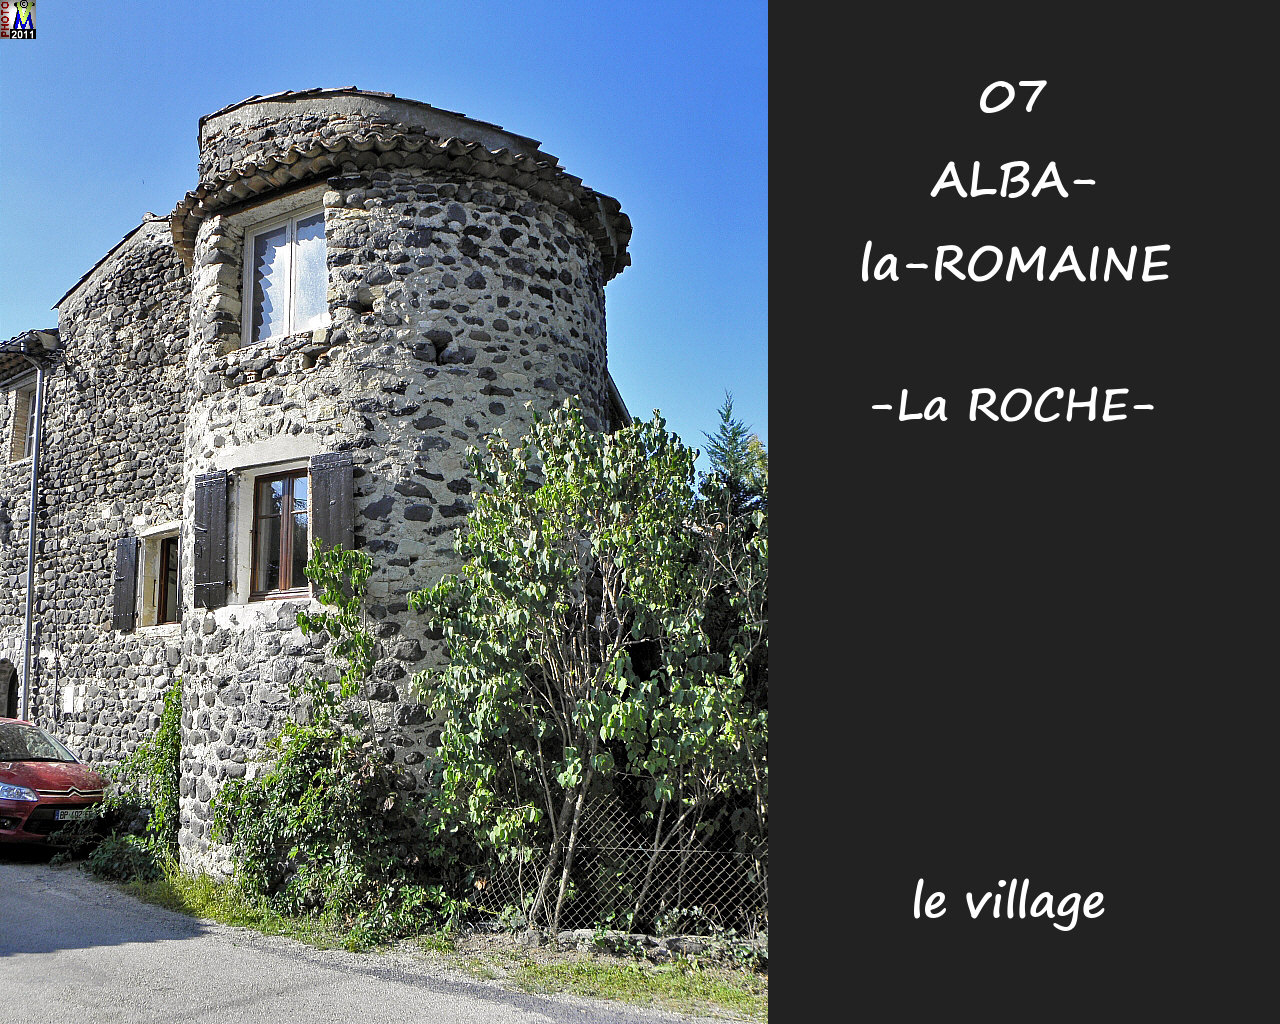 07ALBA-ROMAINEzROCHE_village_140.jpg